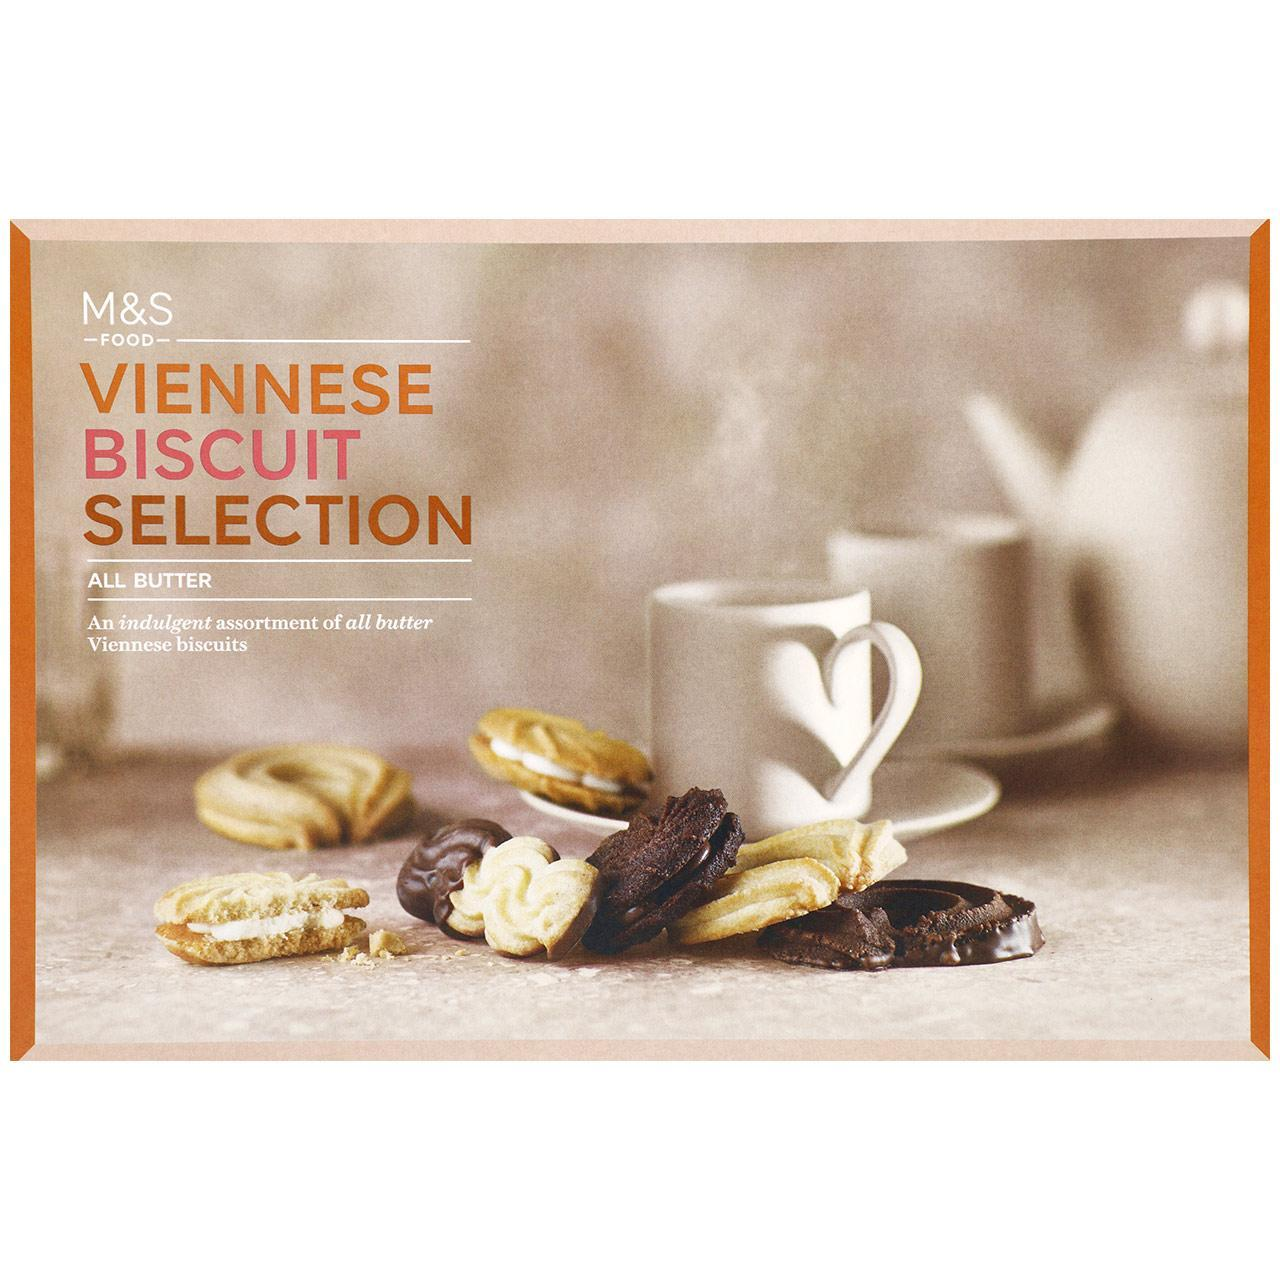 All Butter Viennese Biscuit Selection 450g